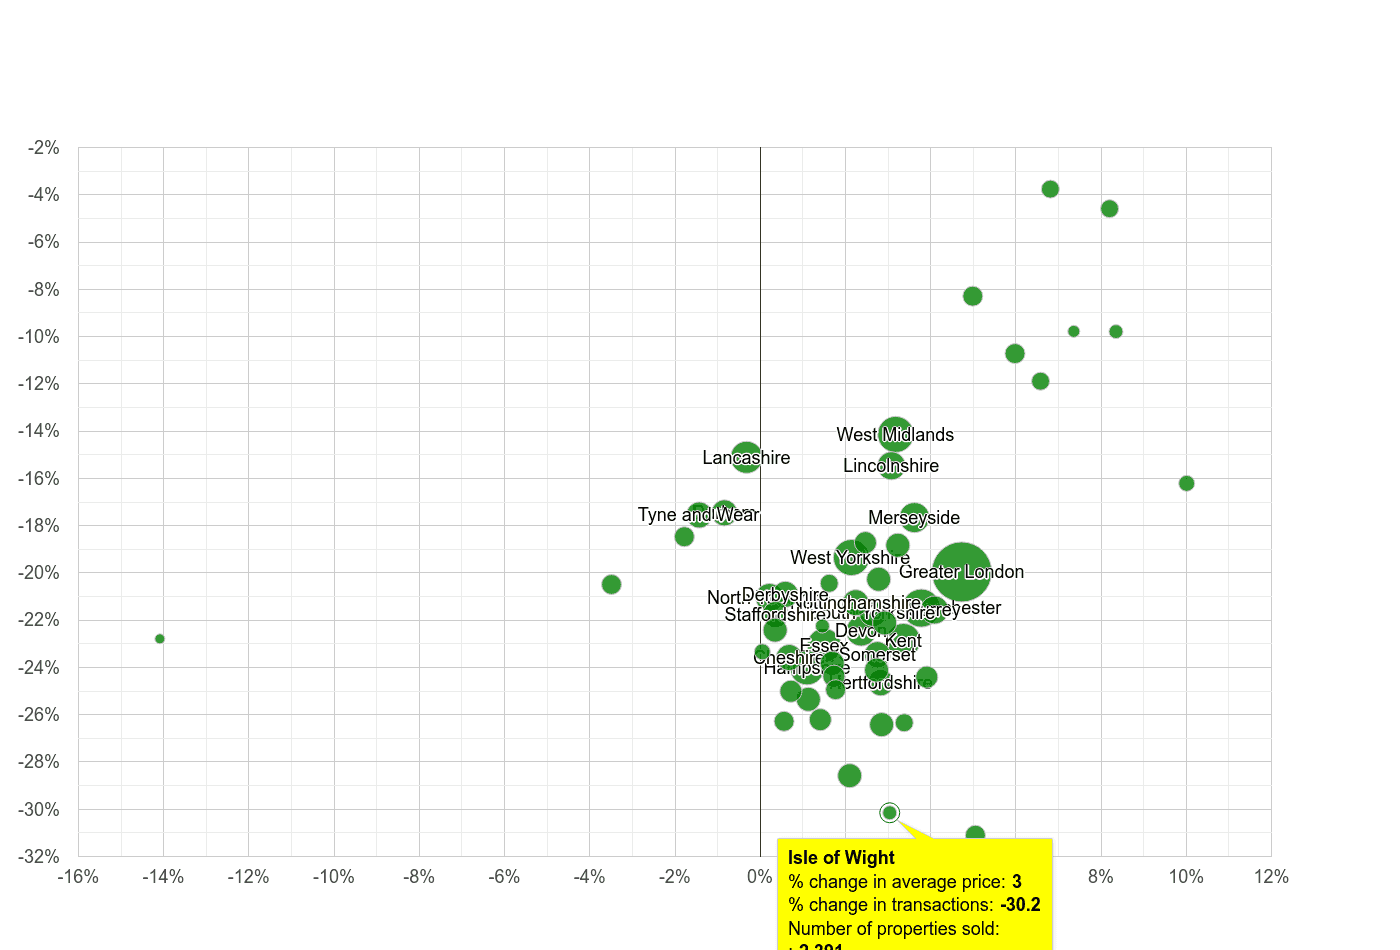 Isle of Wight property price and sales volume change relative to other counties